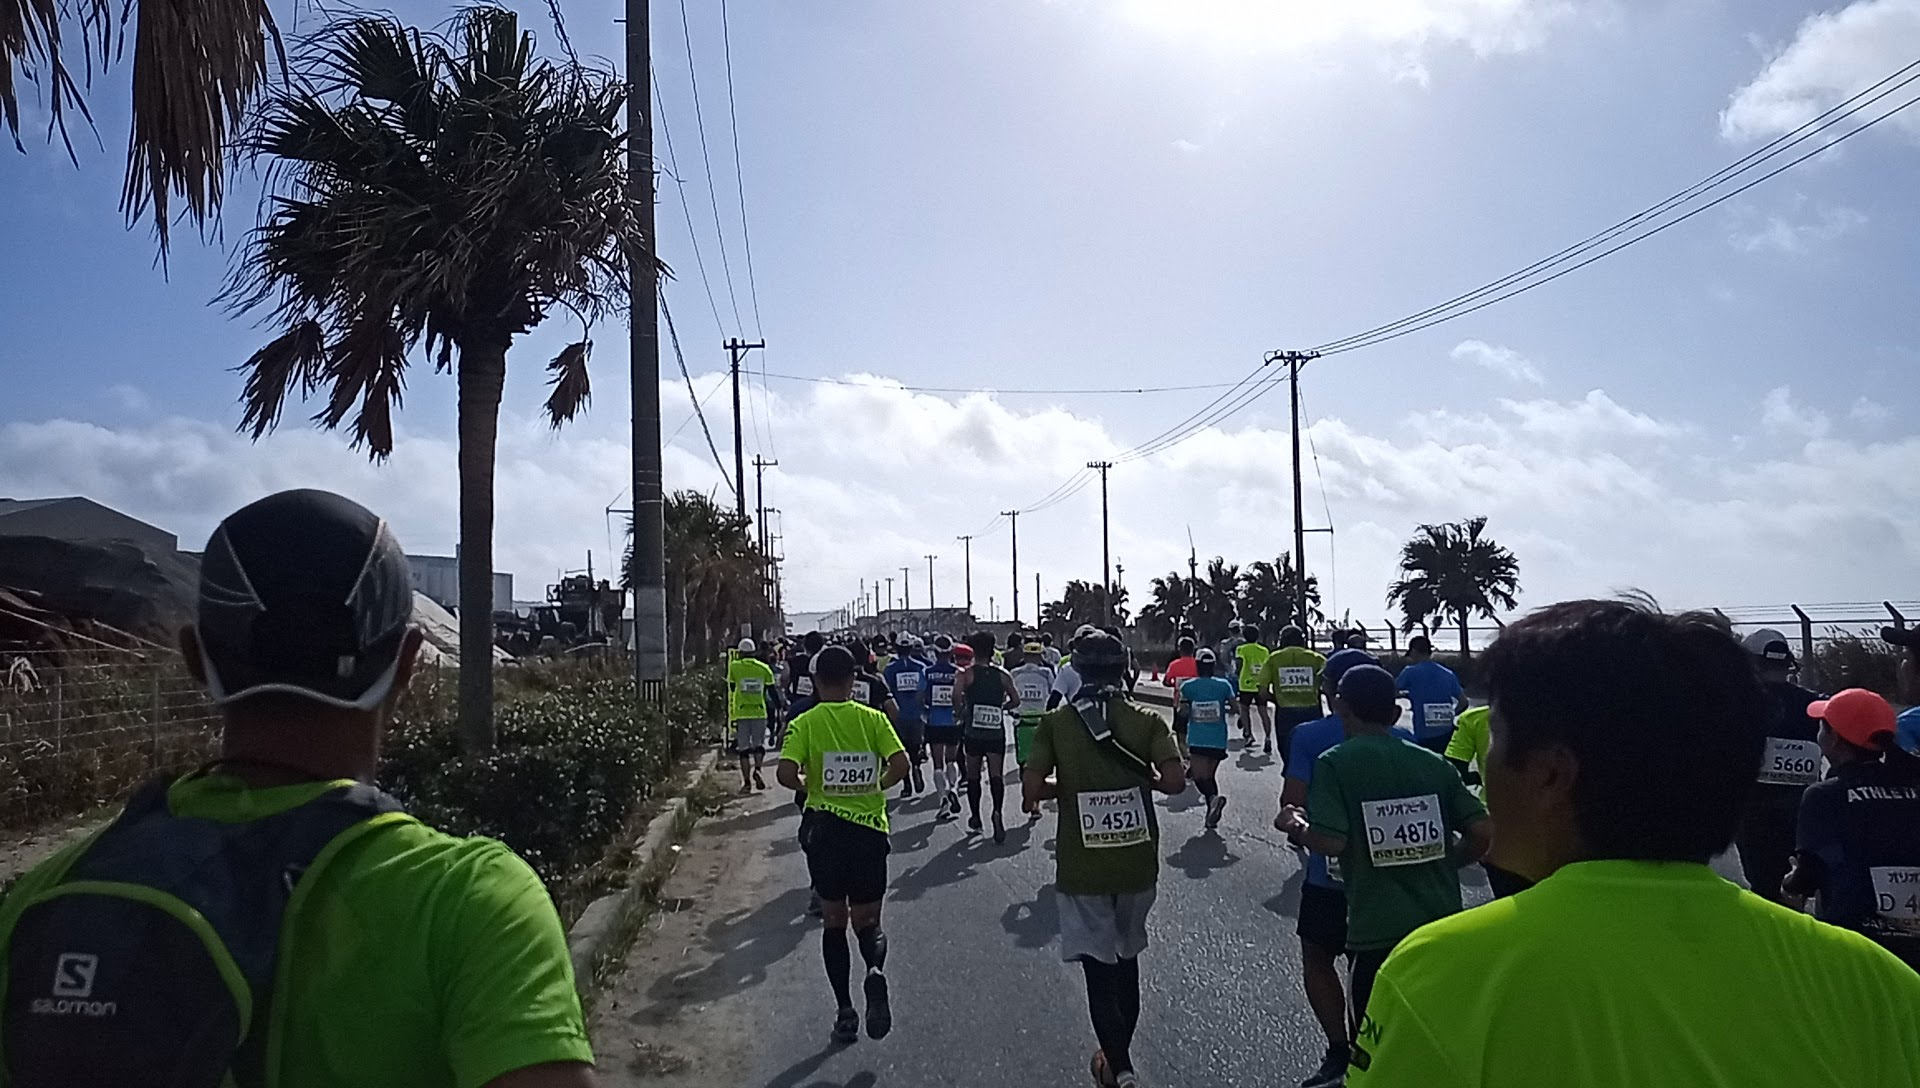 The sun was tight and hot right after the start of the Okinawa Marathon